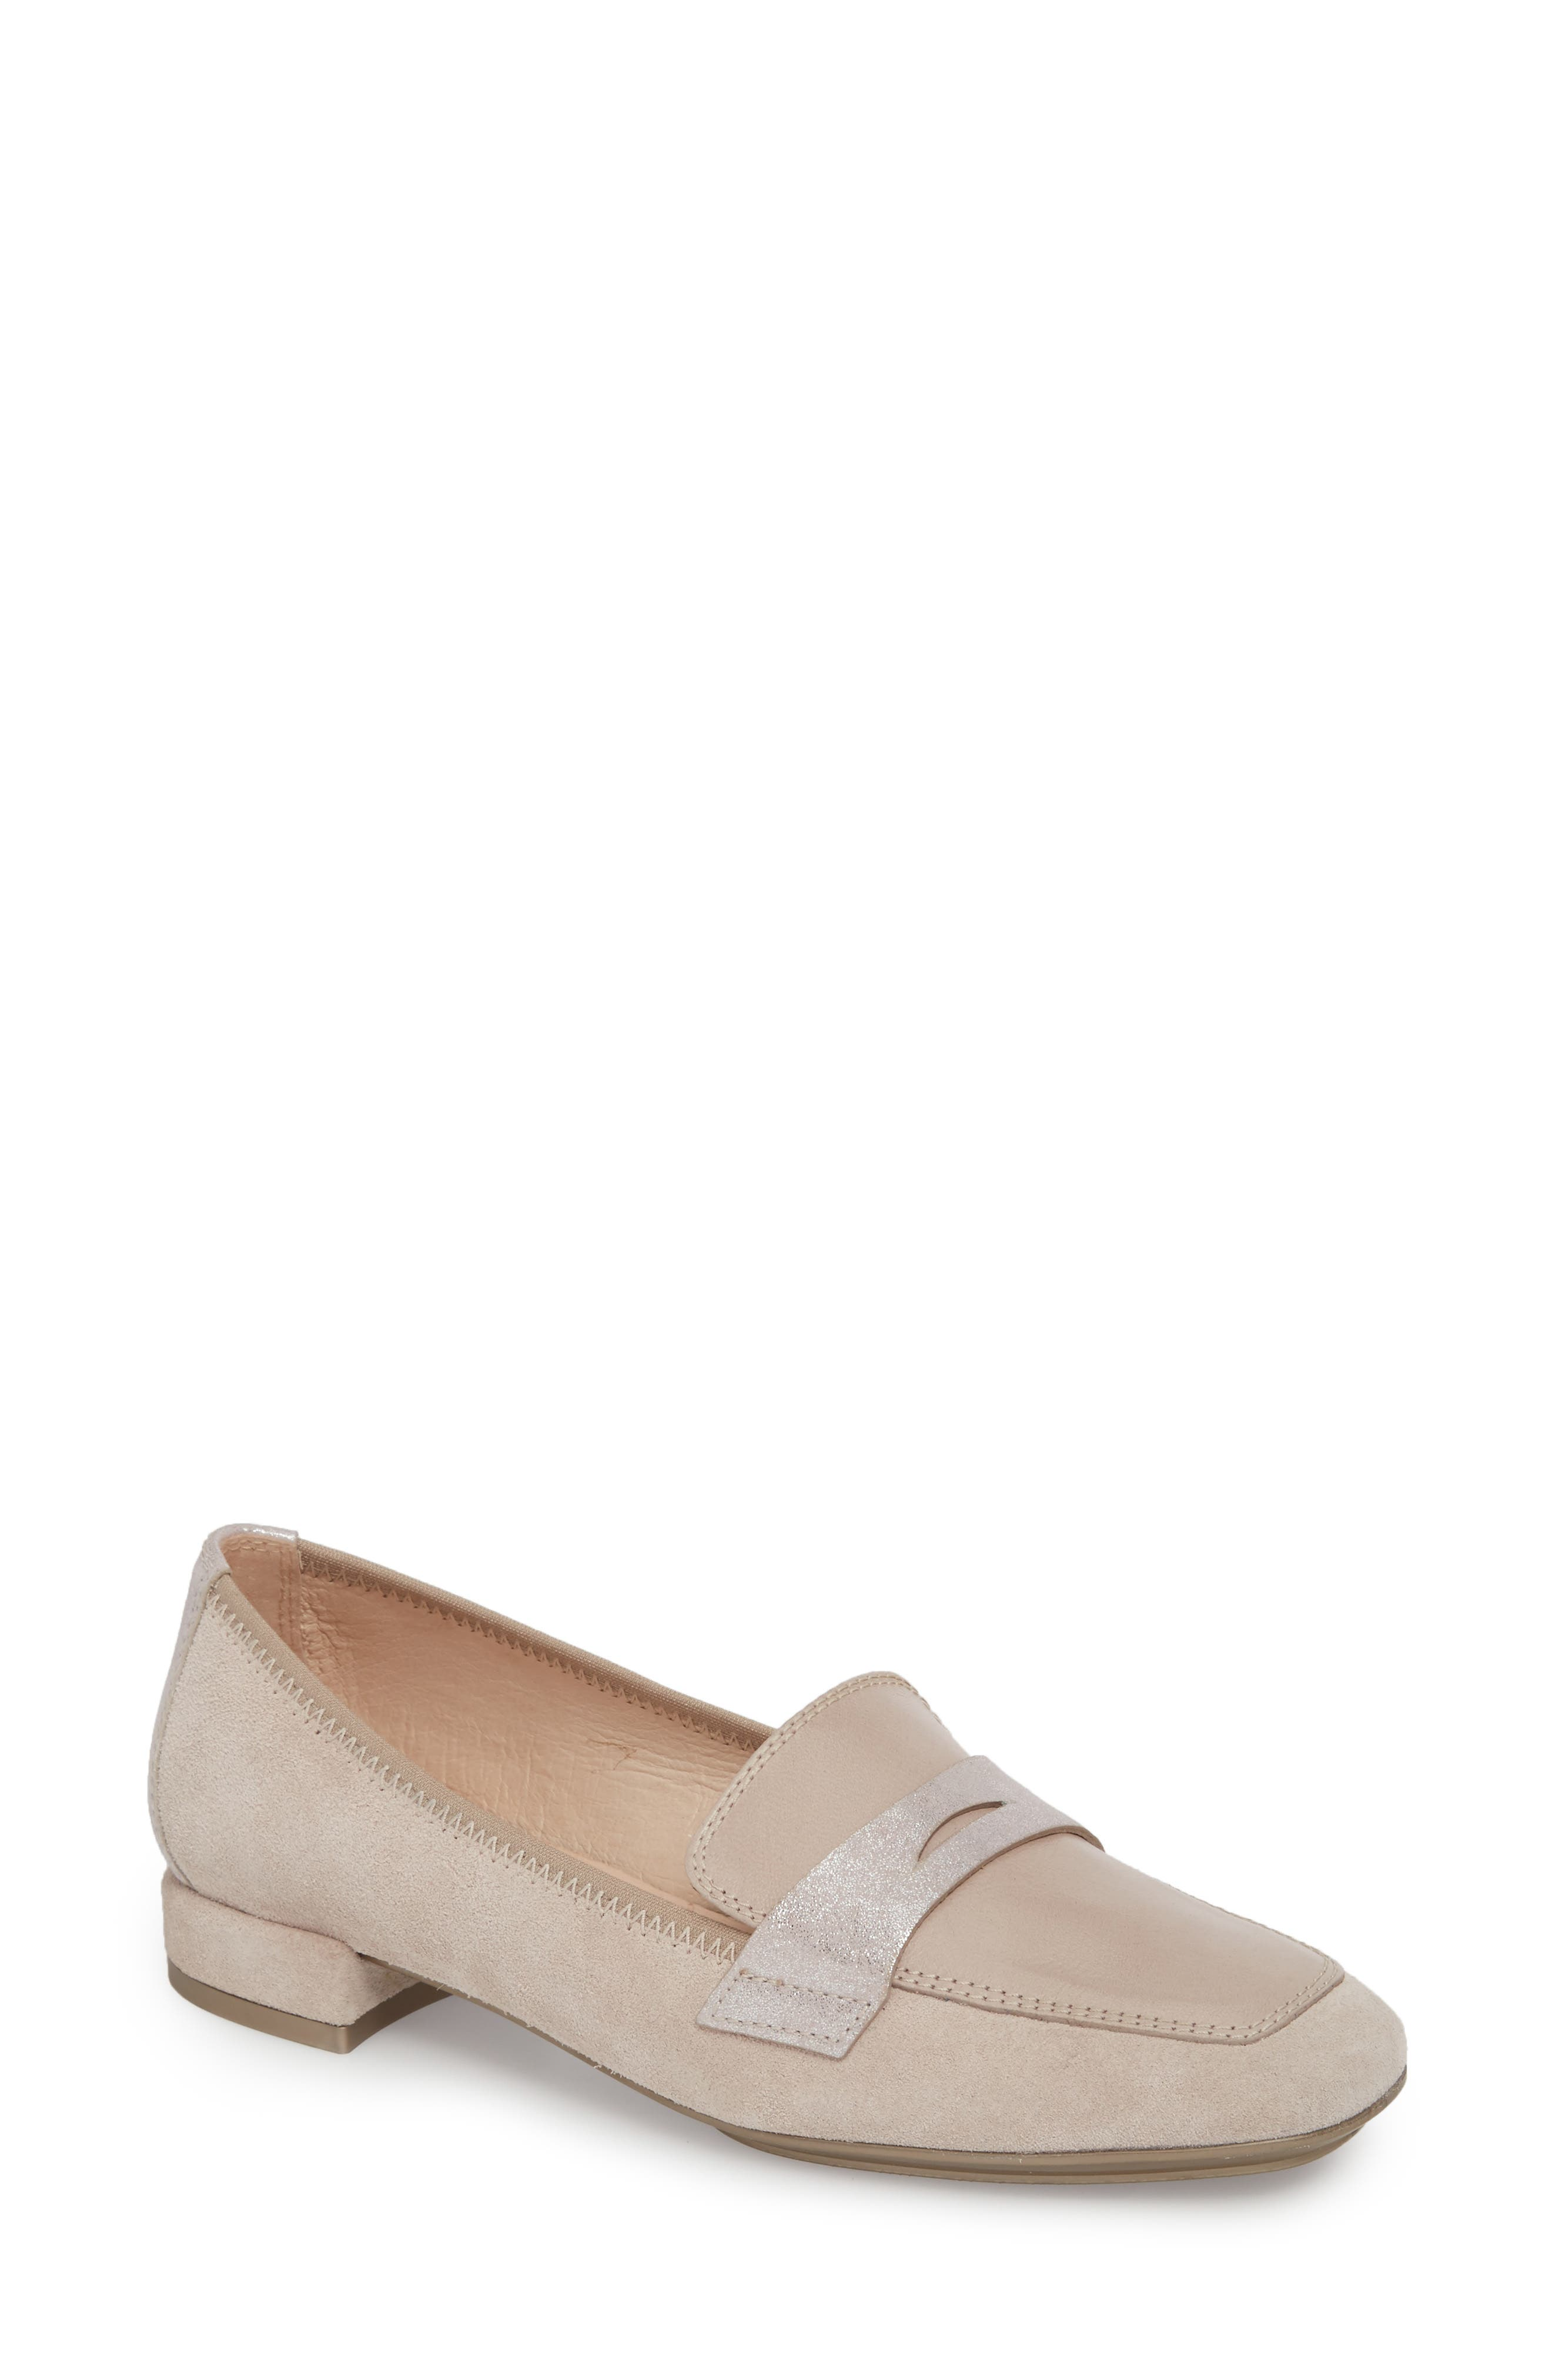 Indie Loafer,                             Main thumbnail 1, color,                             Nougat Fabric